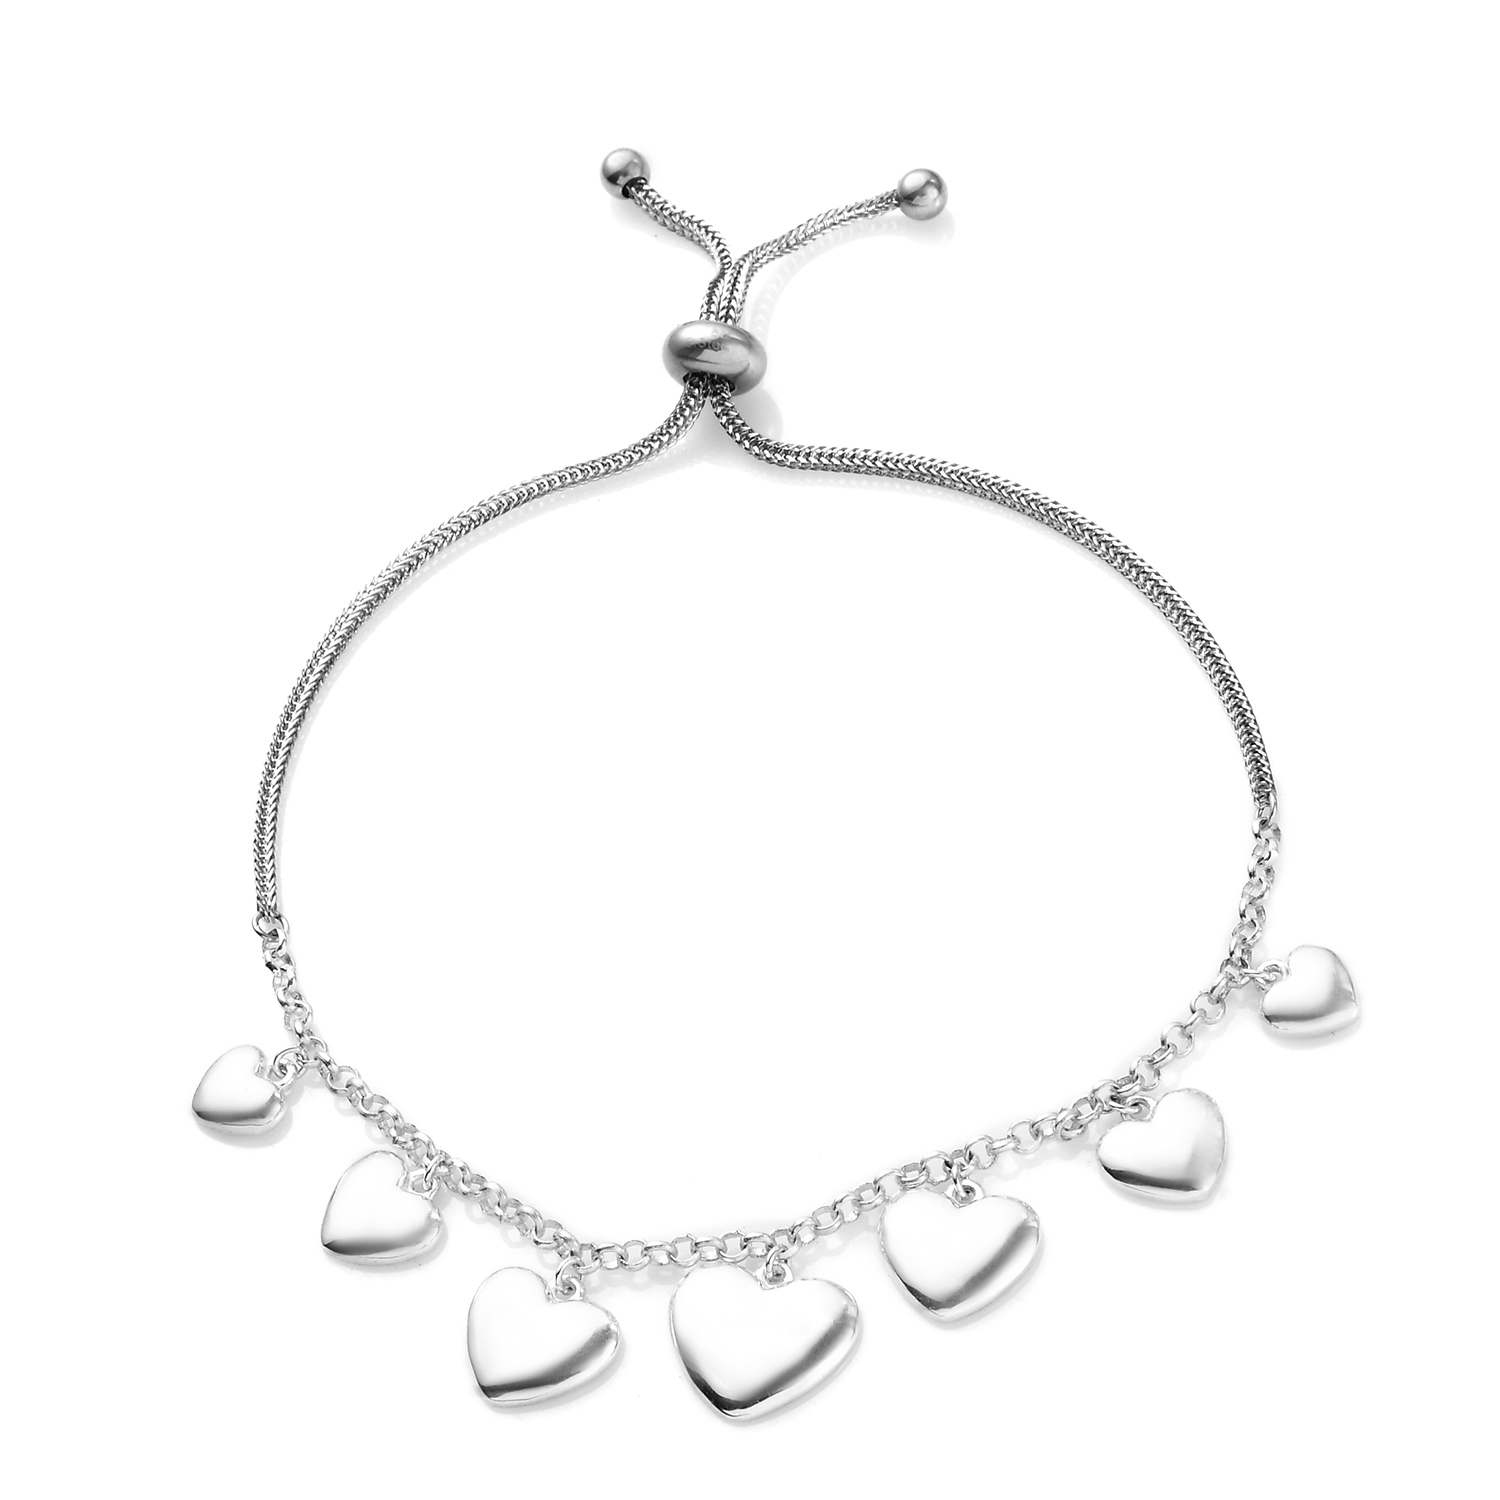 Gemstone Platinum Plated Bolo Heart Love Cut Outs Slider Bracelet Jewelry Gift